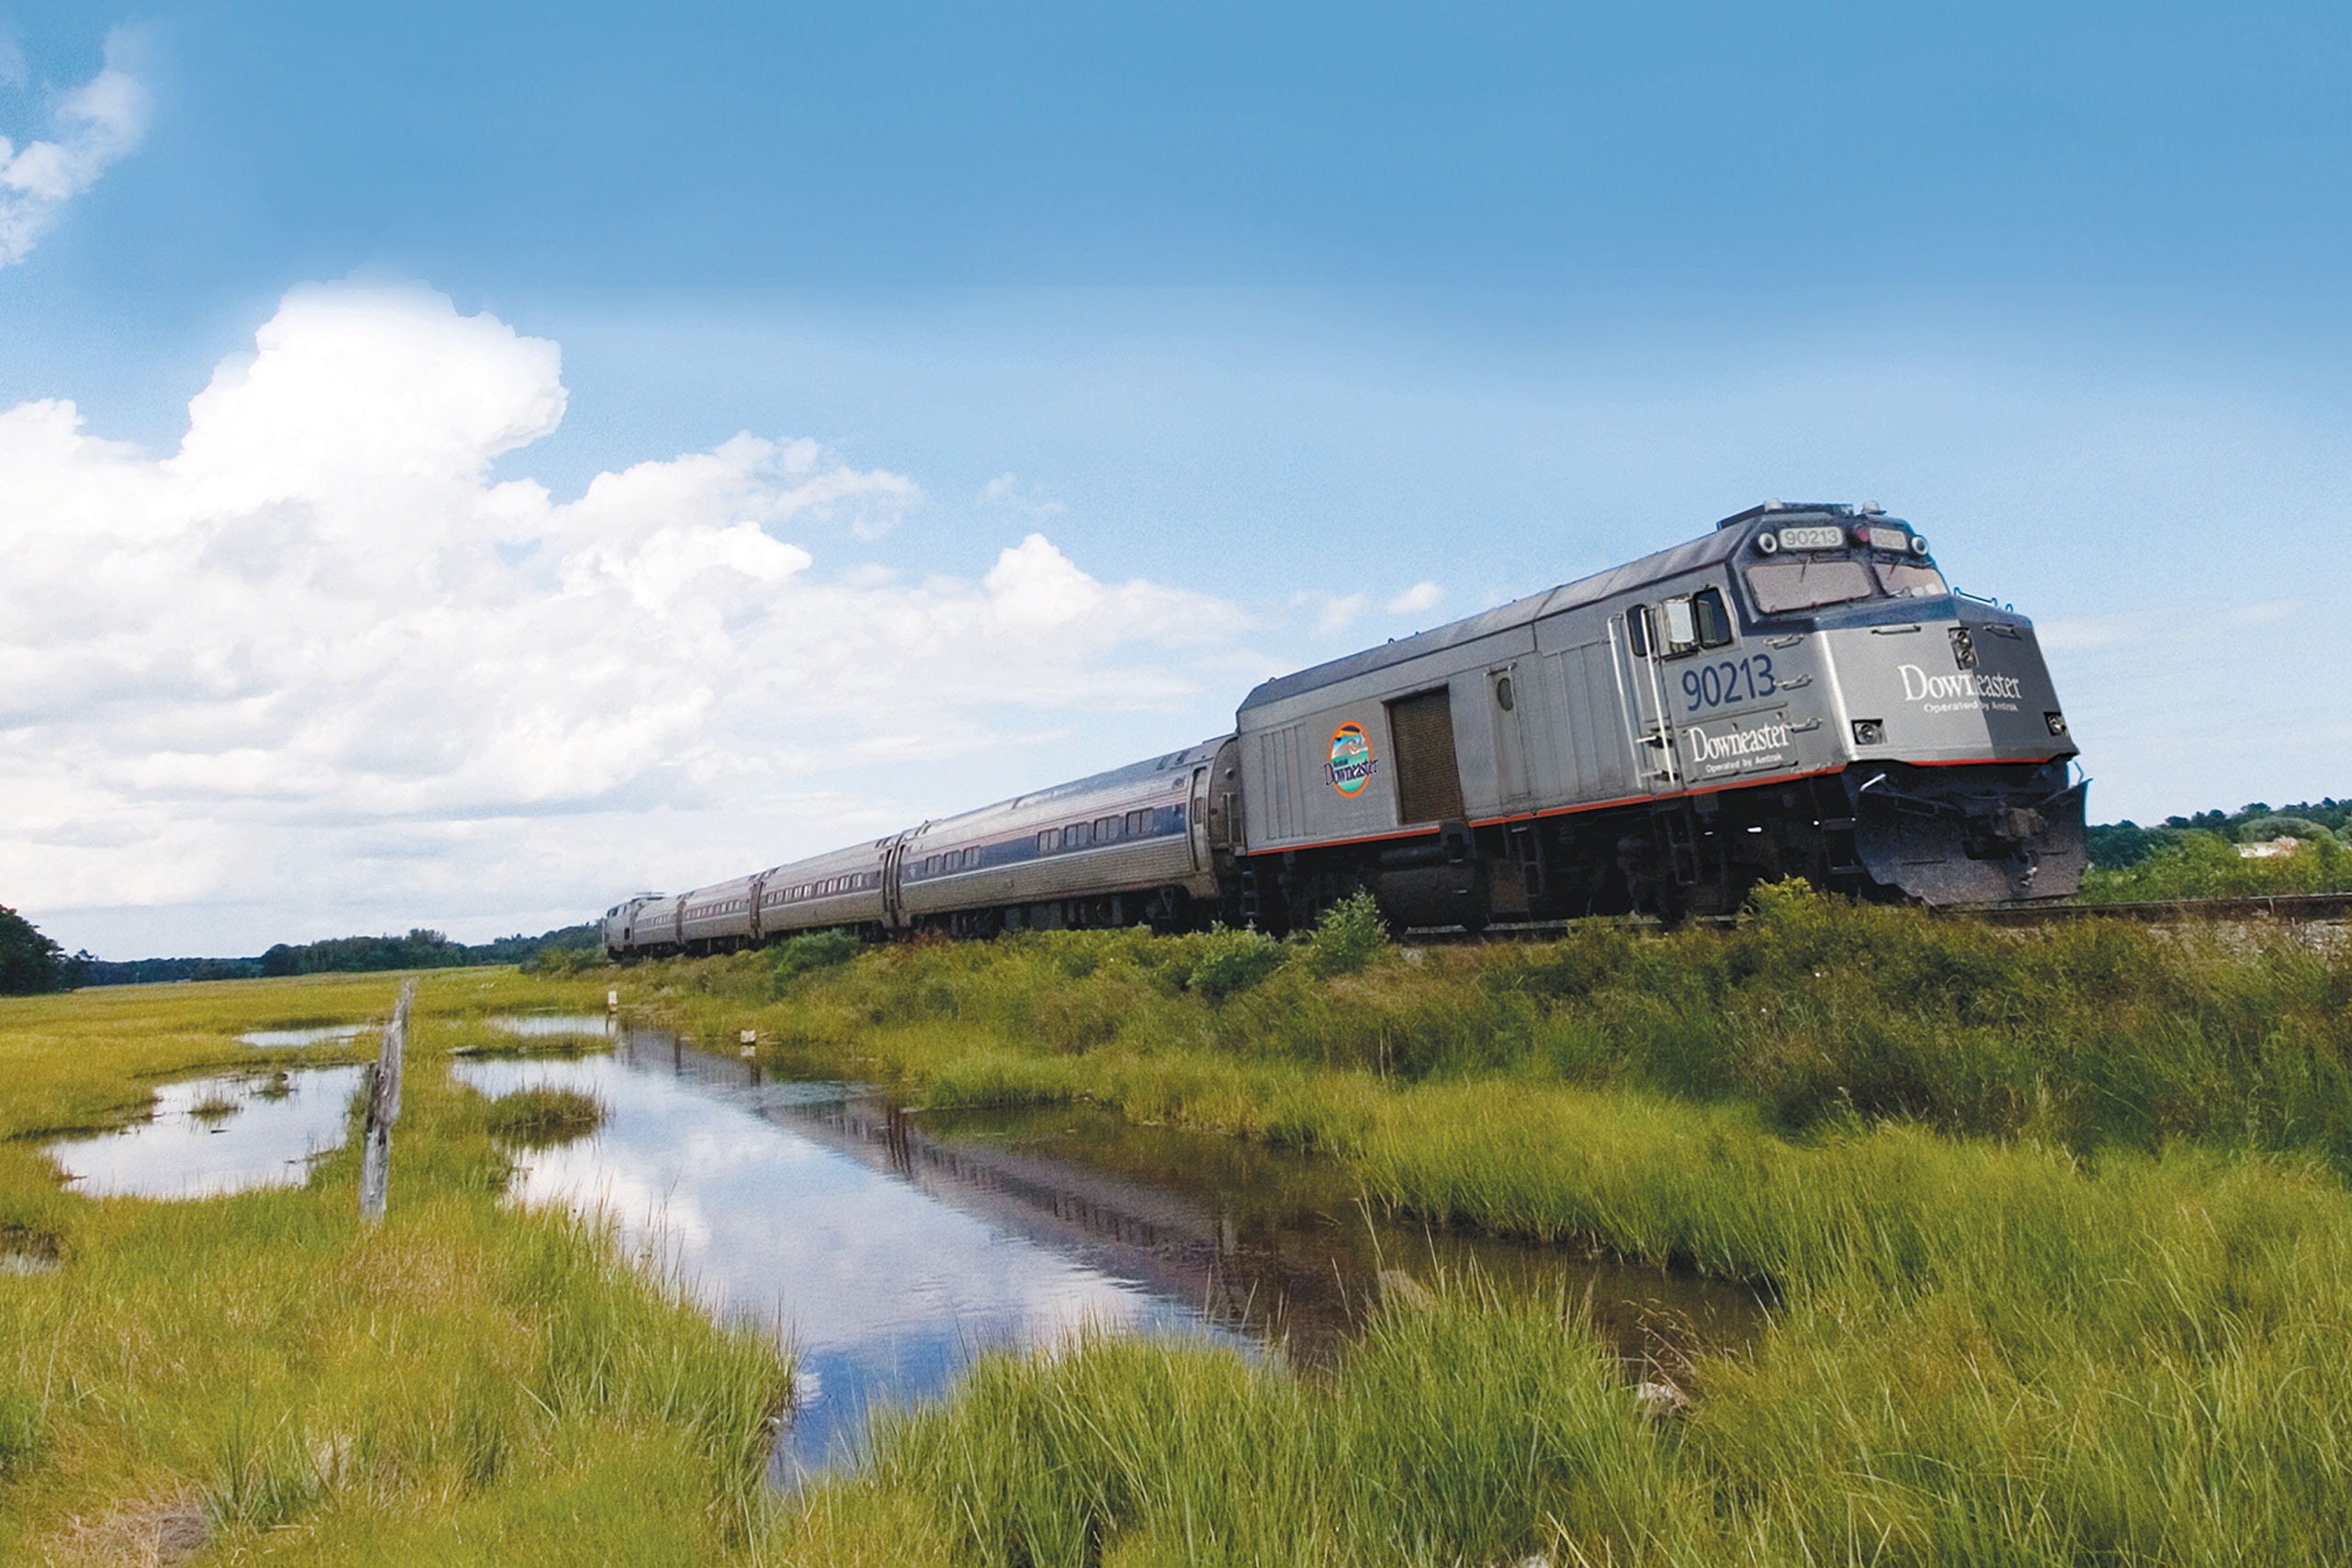 Downeaster train travels through wetlands on sunny day